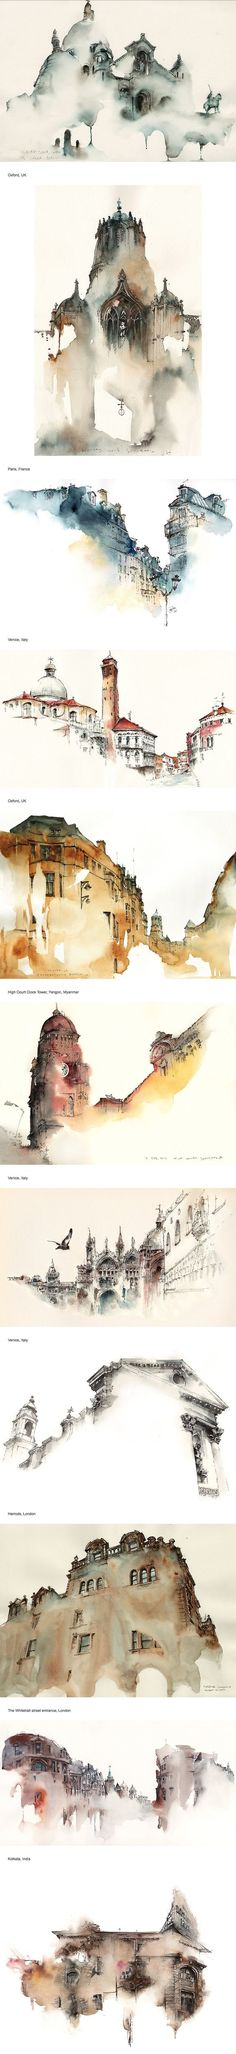 WOW NICE WORK.... Elusive Architecture in Watercolors of Korean Artist Sunga Park